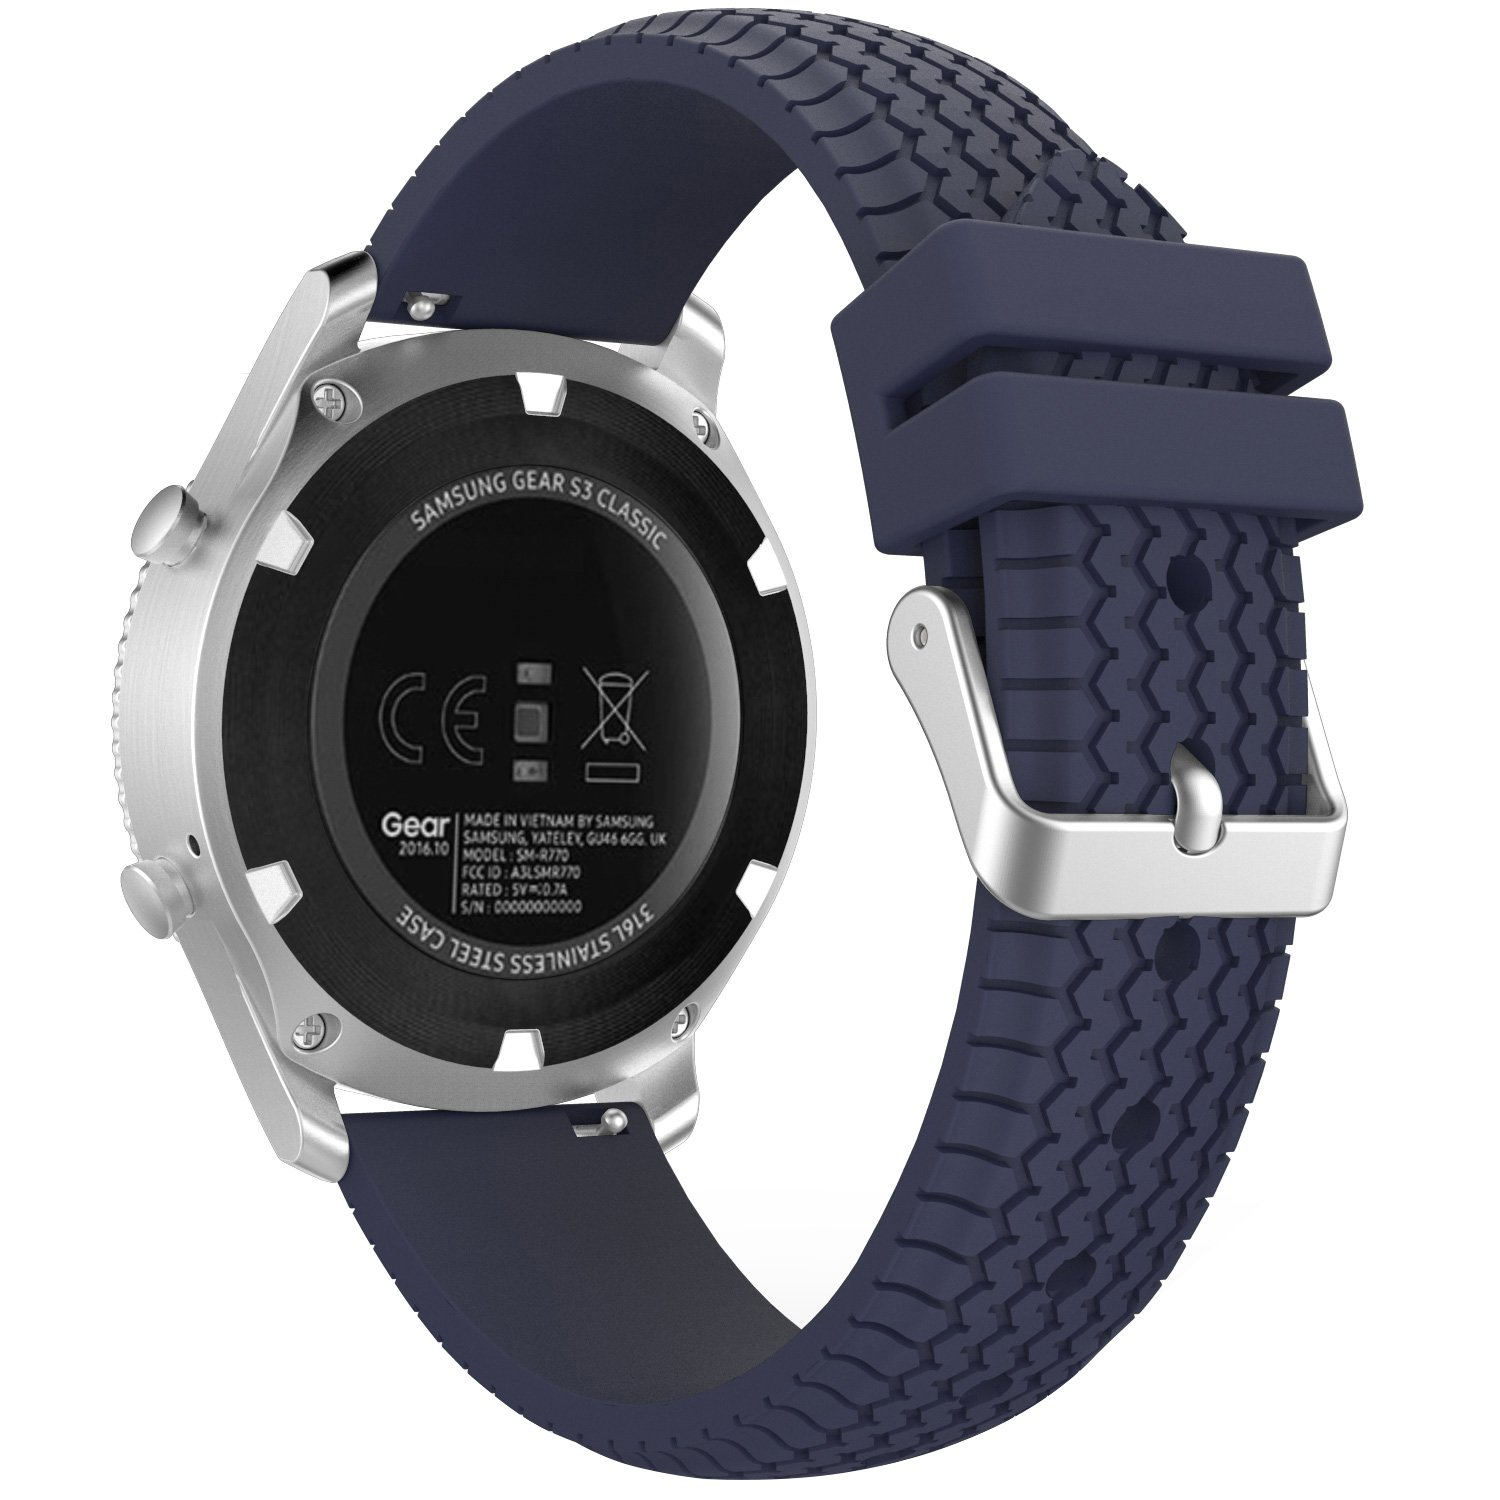 MoKo Band Compatible with Samsung Gear S3 Frontier/Classic/Galaxy Watch 46mm/Ticwatch S2/E2/pro/Huawei Watch GT 46mm, 22mm Silicone Replacement Sport ...